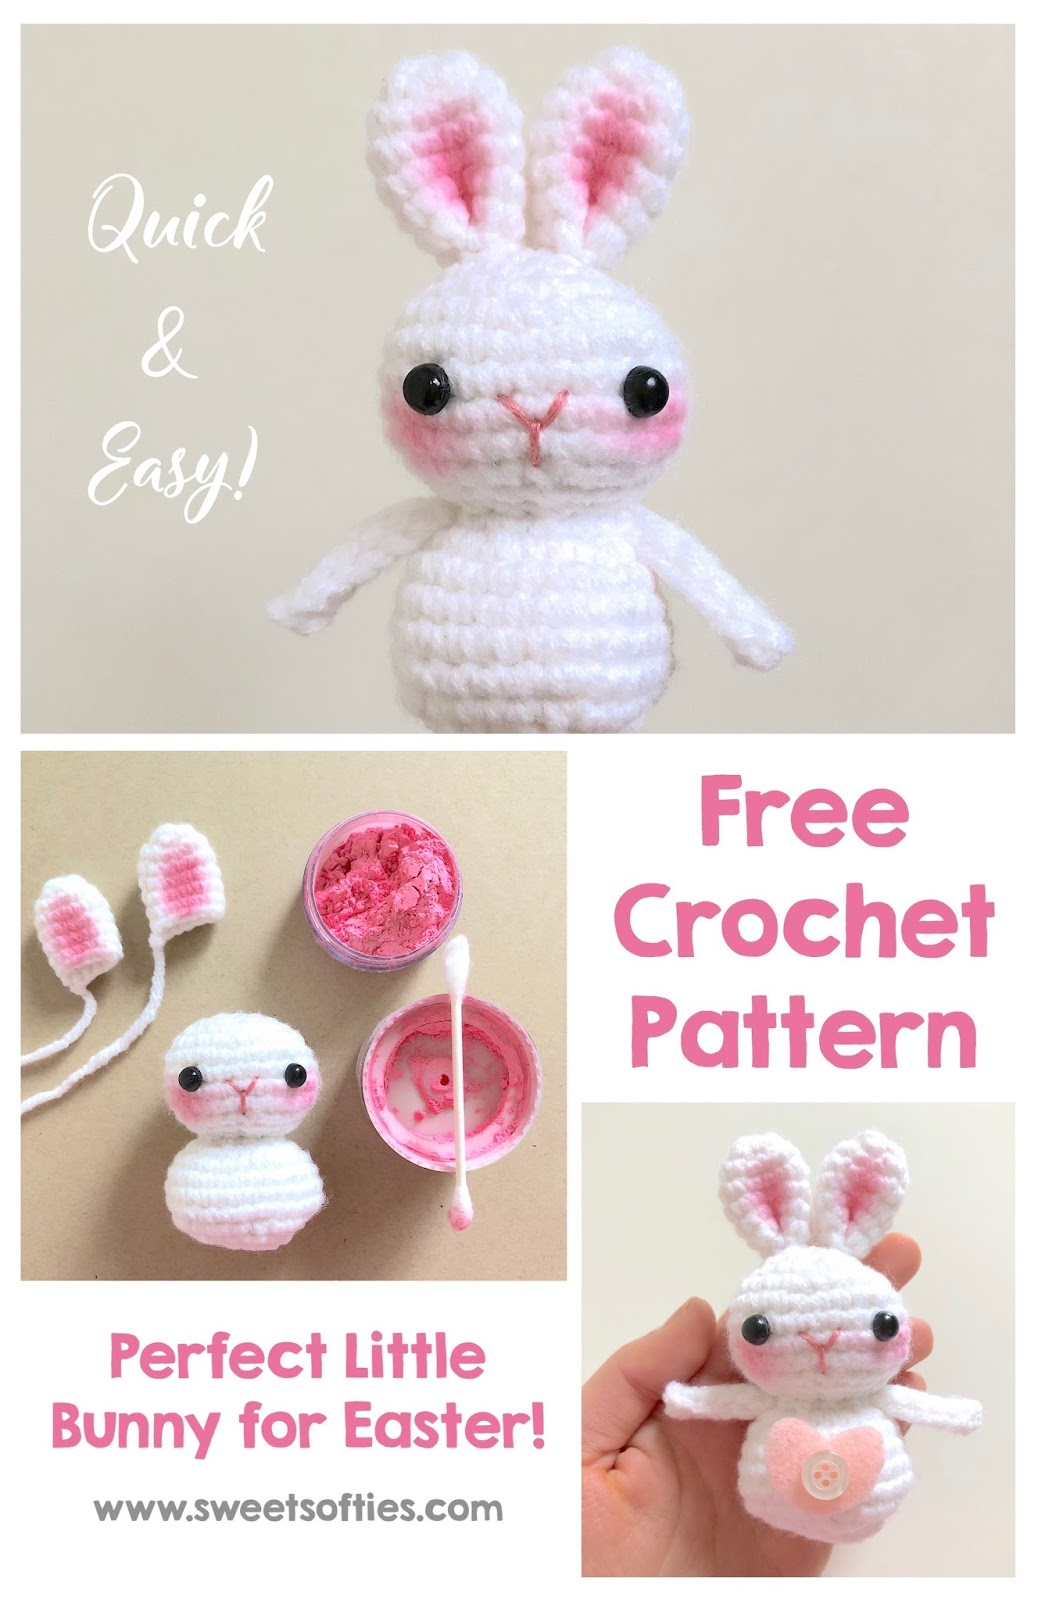 Some-BUNNY To Love (Free Crochet Pattern) - Sweet Softies ...